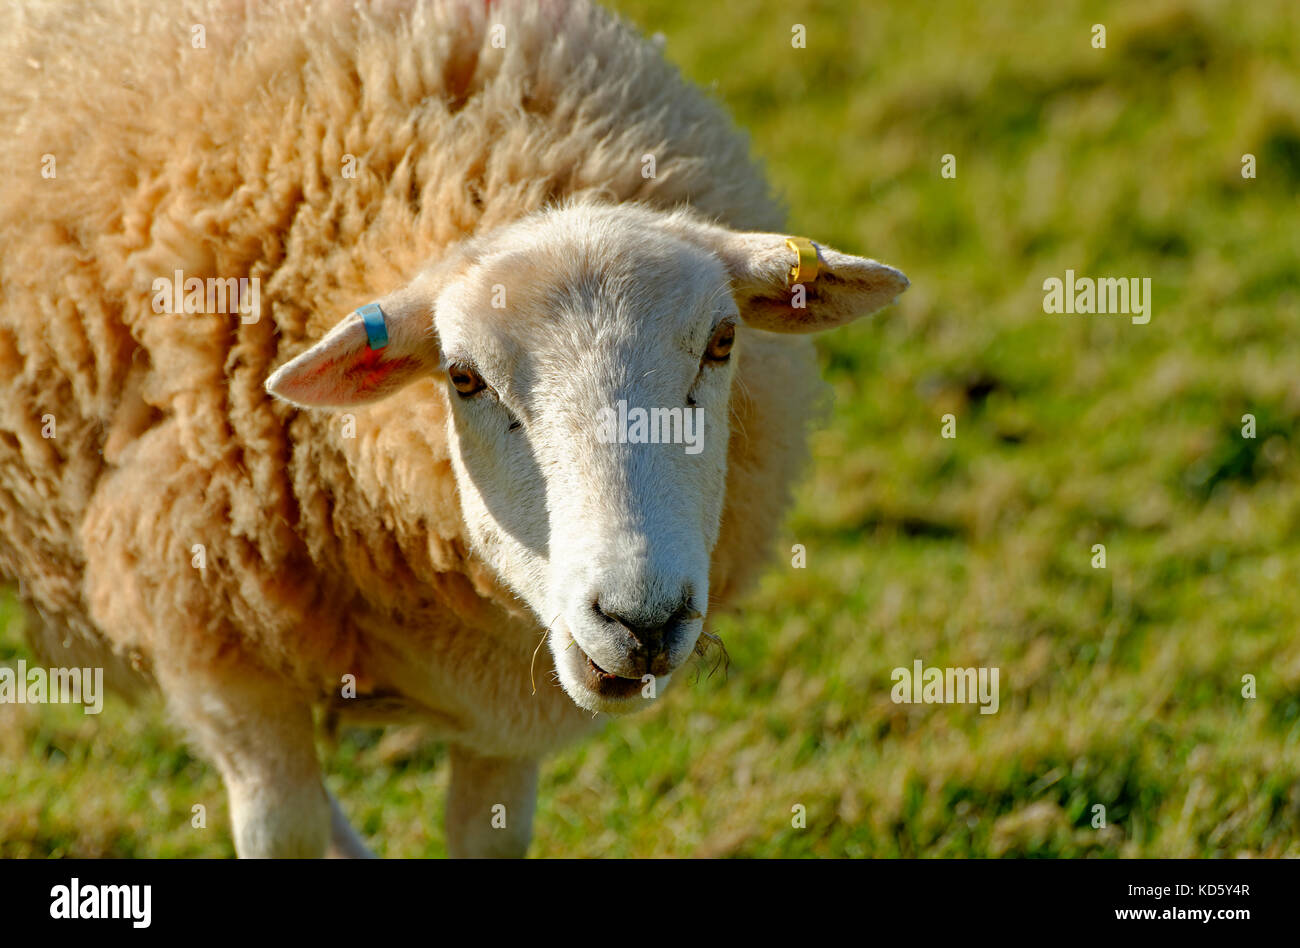 CLOSE UP OF A SHEEP IN DEVON ENGLAND UK - Stock Image